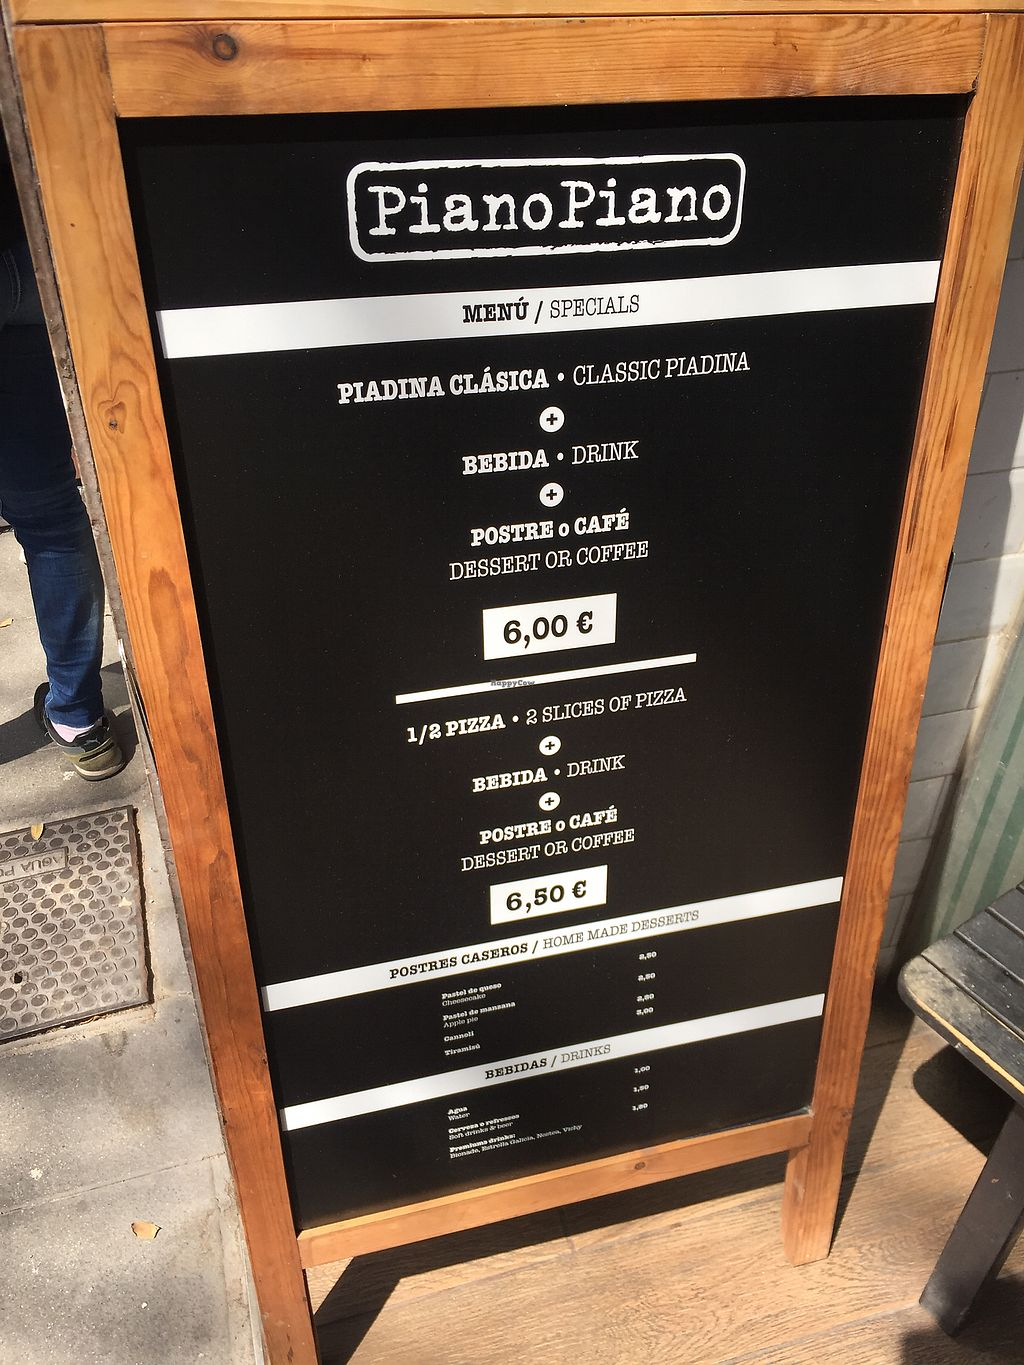 """Photo of Piano Piano  by <a href=""""/members/profile/Jameskille"""">Jameskille</a> <br/>Daily menu  <br/> April 20, 2018  - <a href='/contact/abuse/image/89400/388532'>Report</a>"""